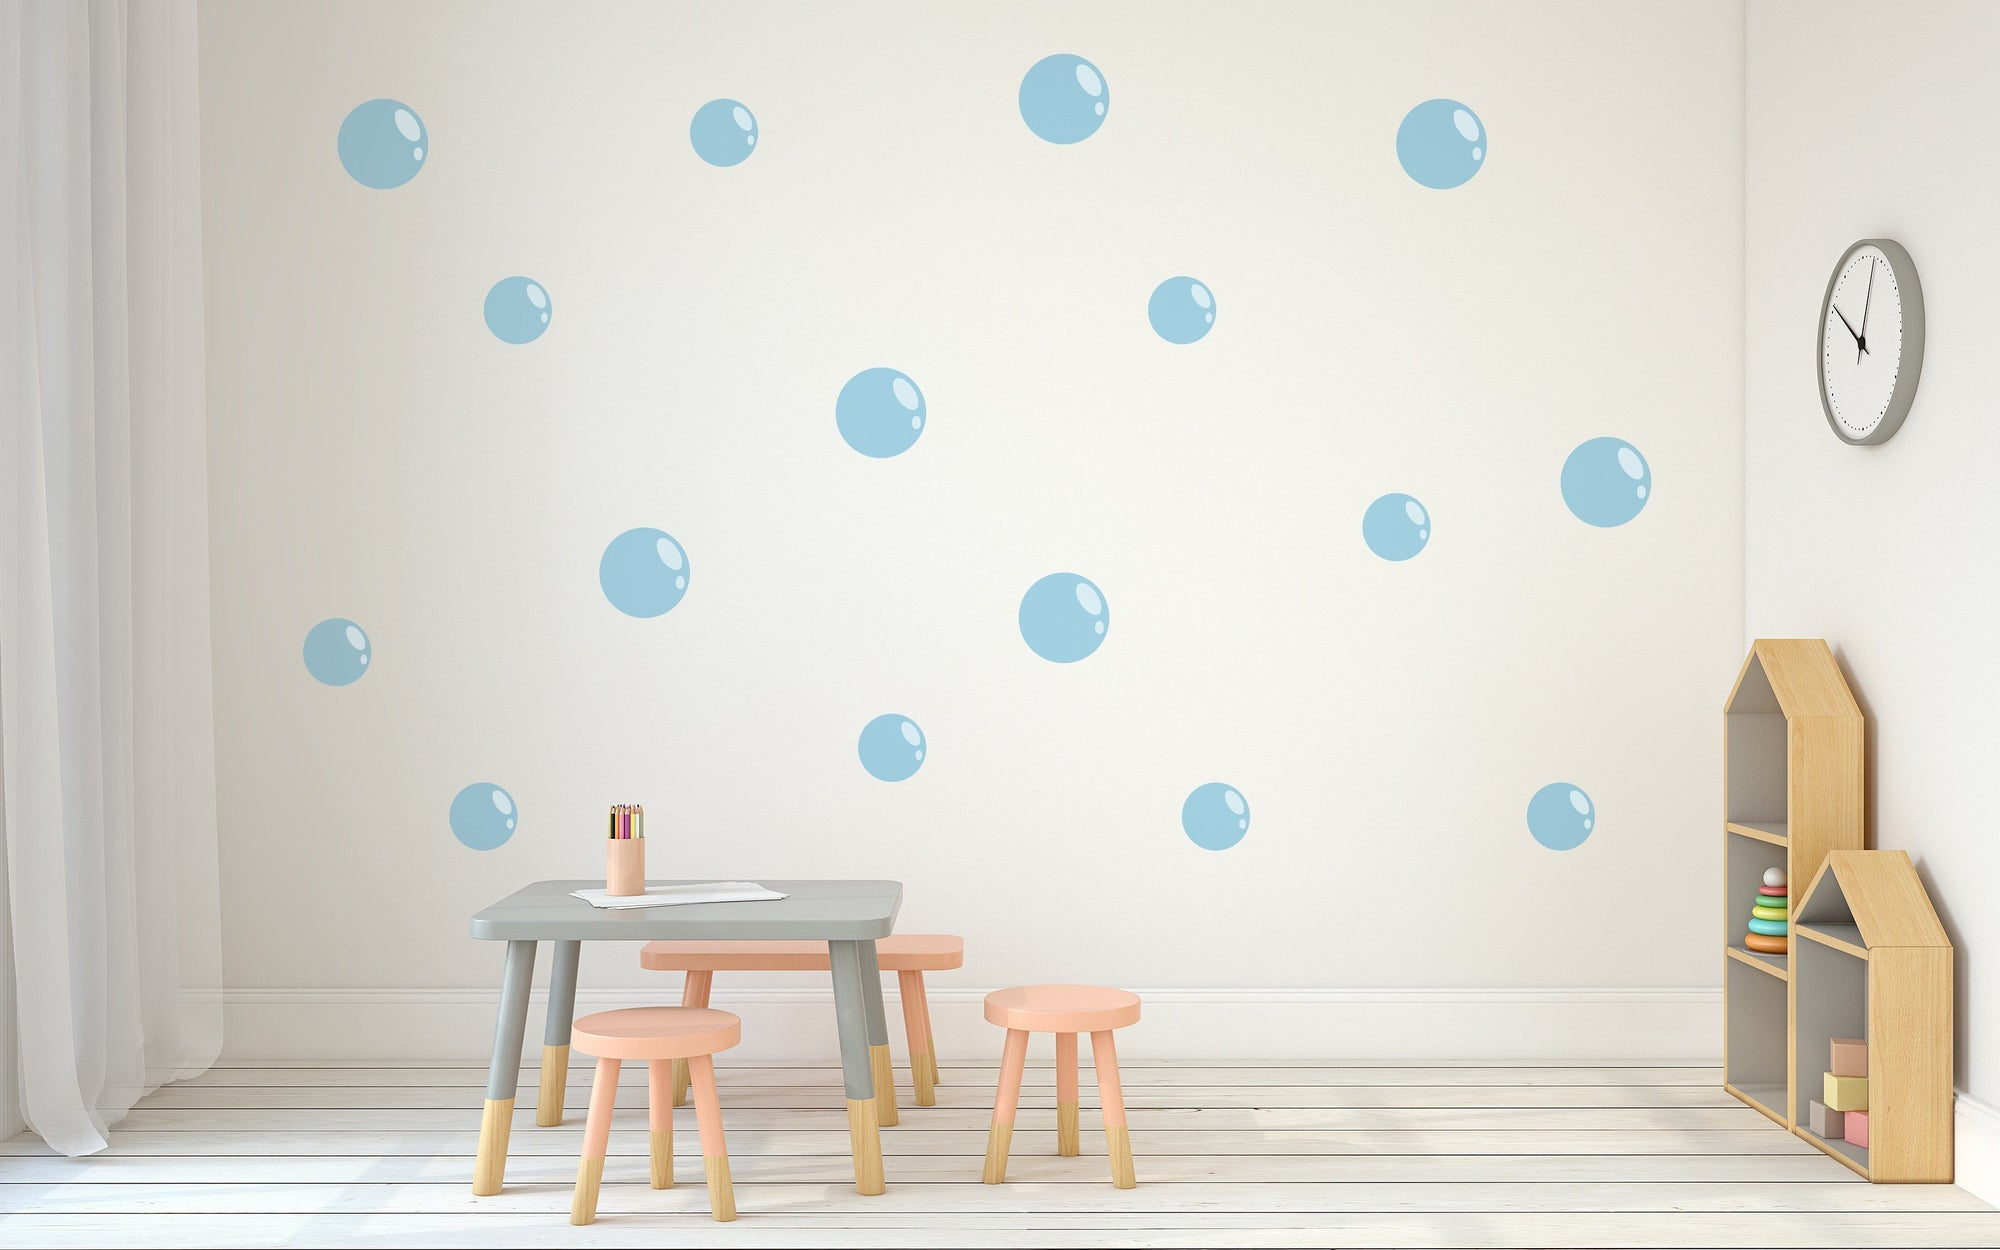 Bubbles Nursery Wall Art - Vinyl Wall Decals For Nurseries, Children's Rooms, And Home Decor